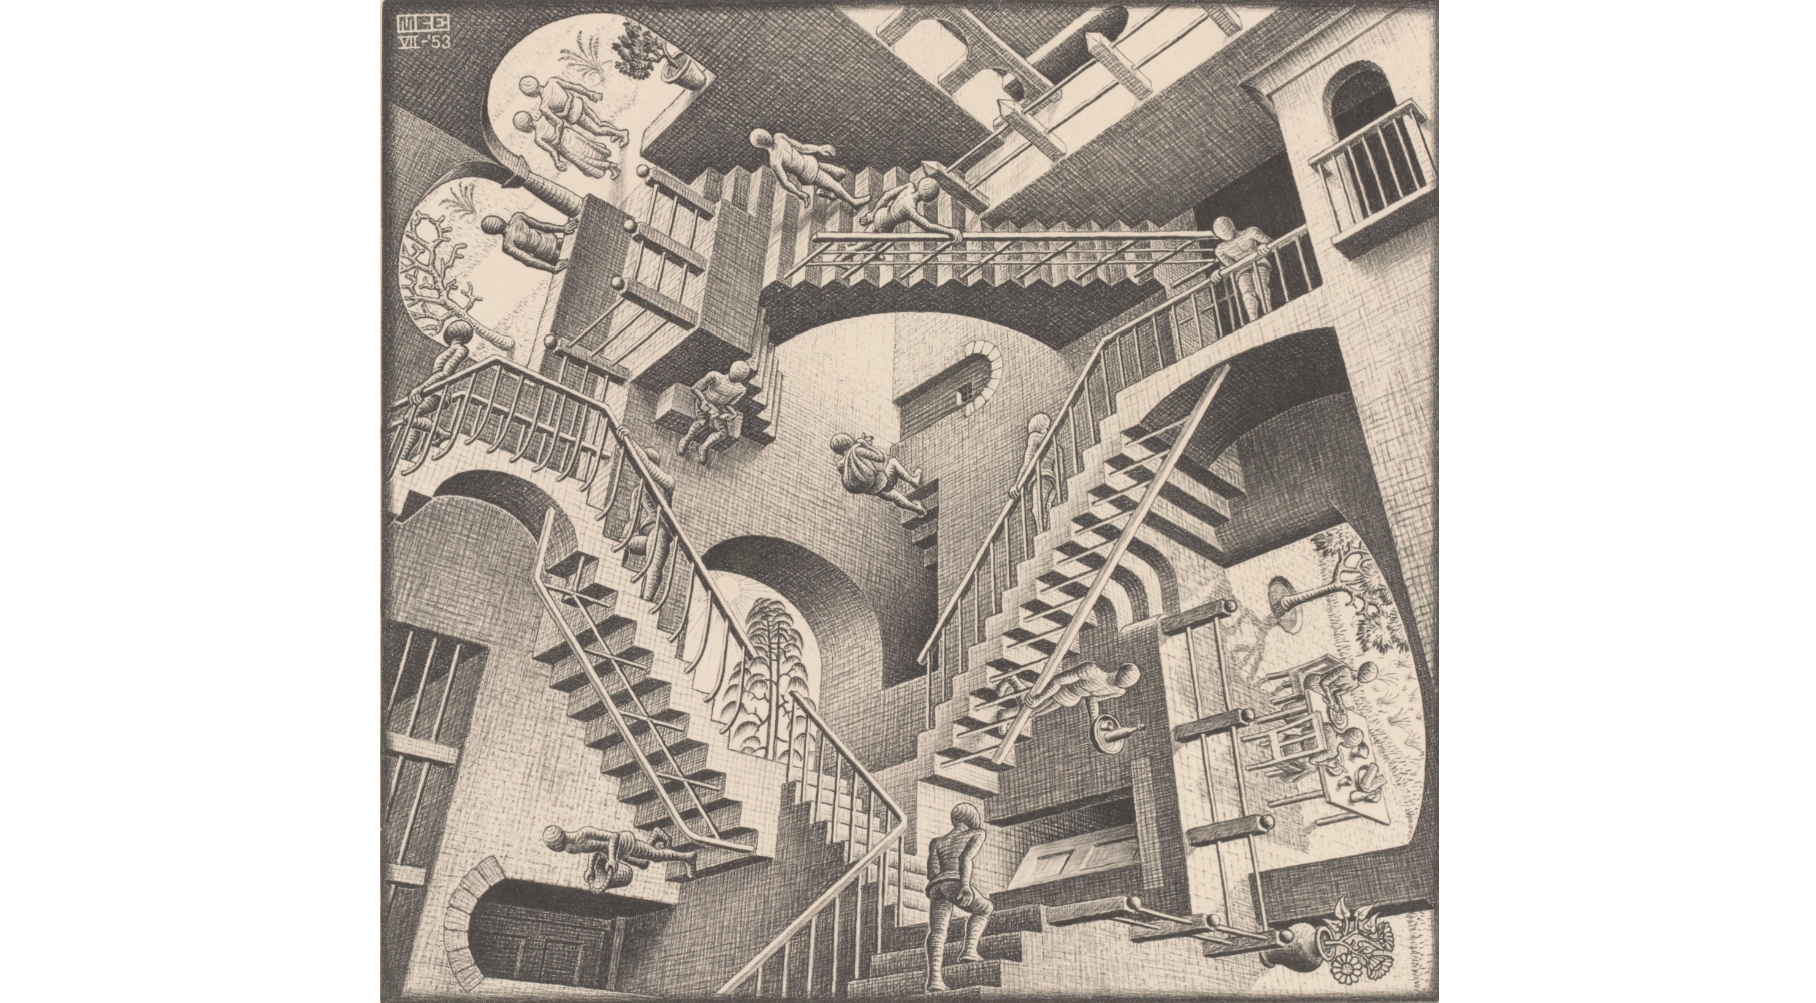 Drawn m.c.escher house 1953 You about know art